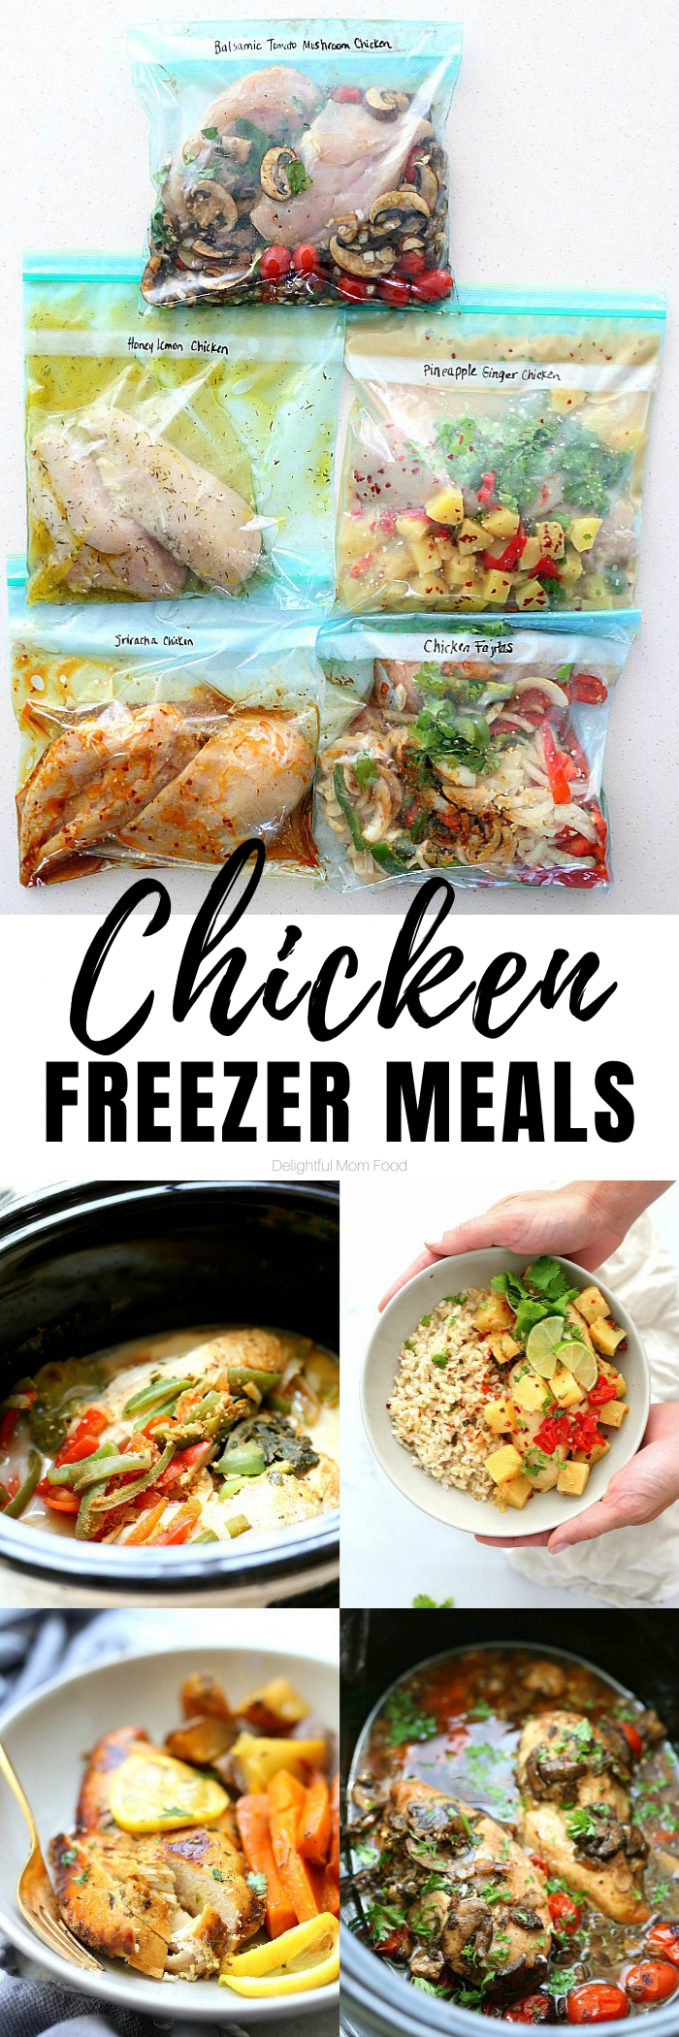 14 Chicken Freezer Meals: Easy Meal Prep | Delightful Mom Food - recipes to eat healthy